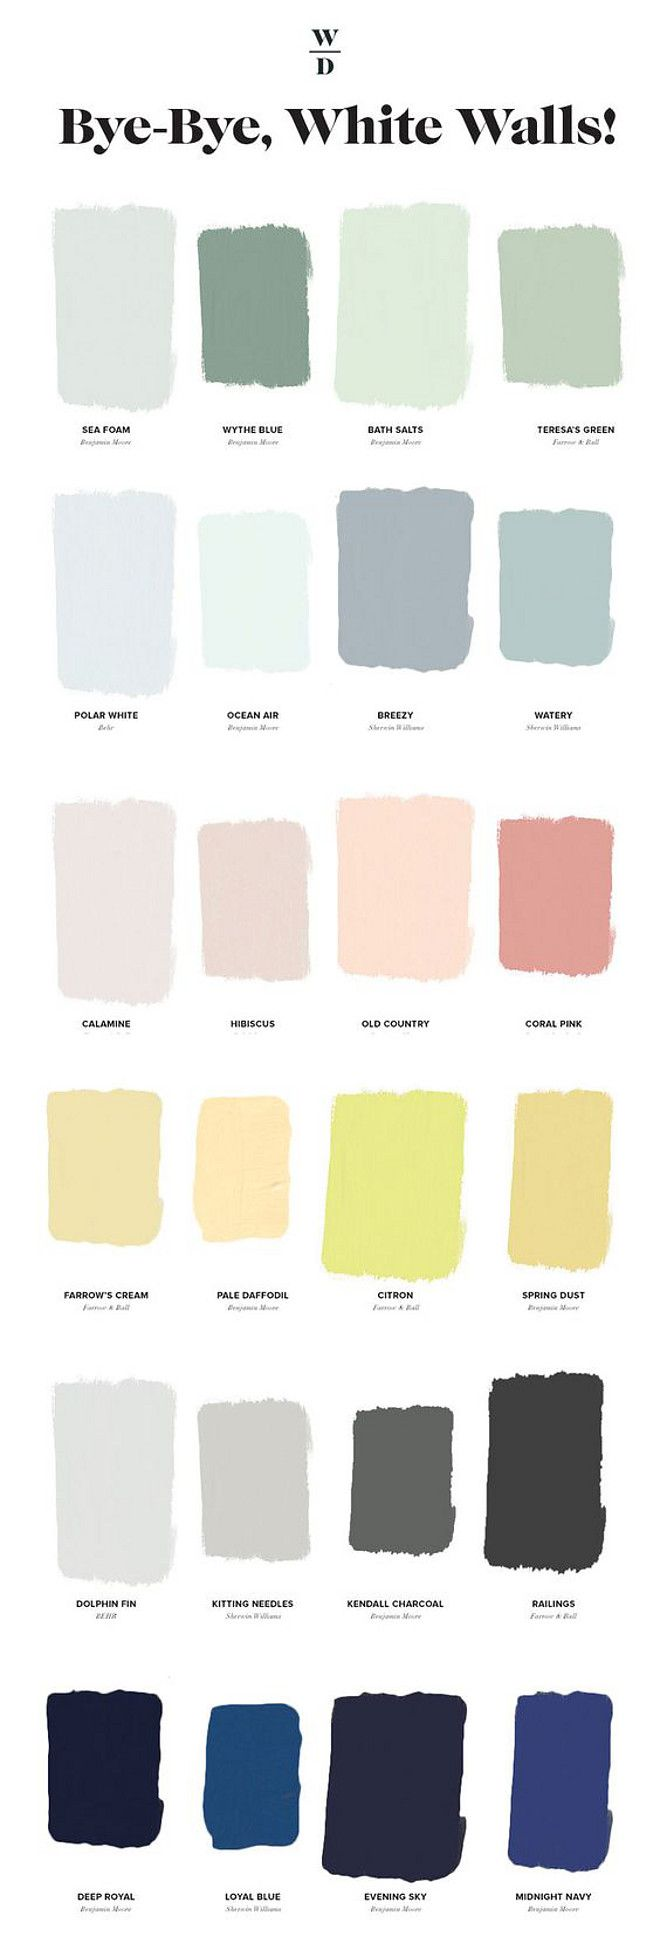 Colorful Paint color Ideas. A collections of greens, blues, reds, yellows, greys and blue paint colors. Benjamin Moore Sea foam 2123-60. Benjamin Moore Wythe Blue. Benjamin Moore Bath Salts. Farrow and Ball Teresa's Green No. 236. Behr Polar White. Benjamin Moore Ocean Air. Sherwin Williams Breezy. Sherwin Williams Watery. Farrow and Ball Calamine No.230. Benjamin Moore Hibiscus. Benjamin Moore OC-76 Old Country. Benjamin Moore 2003-50 Coral Pink. Farrow and Ball Farrow's Cream. Benjamin…